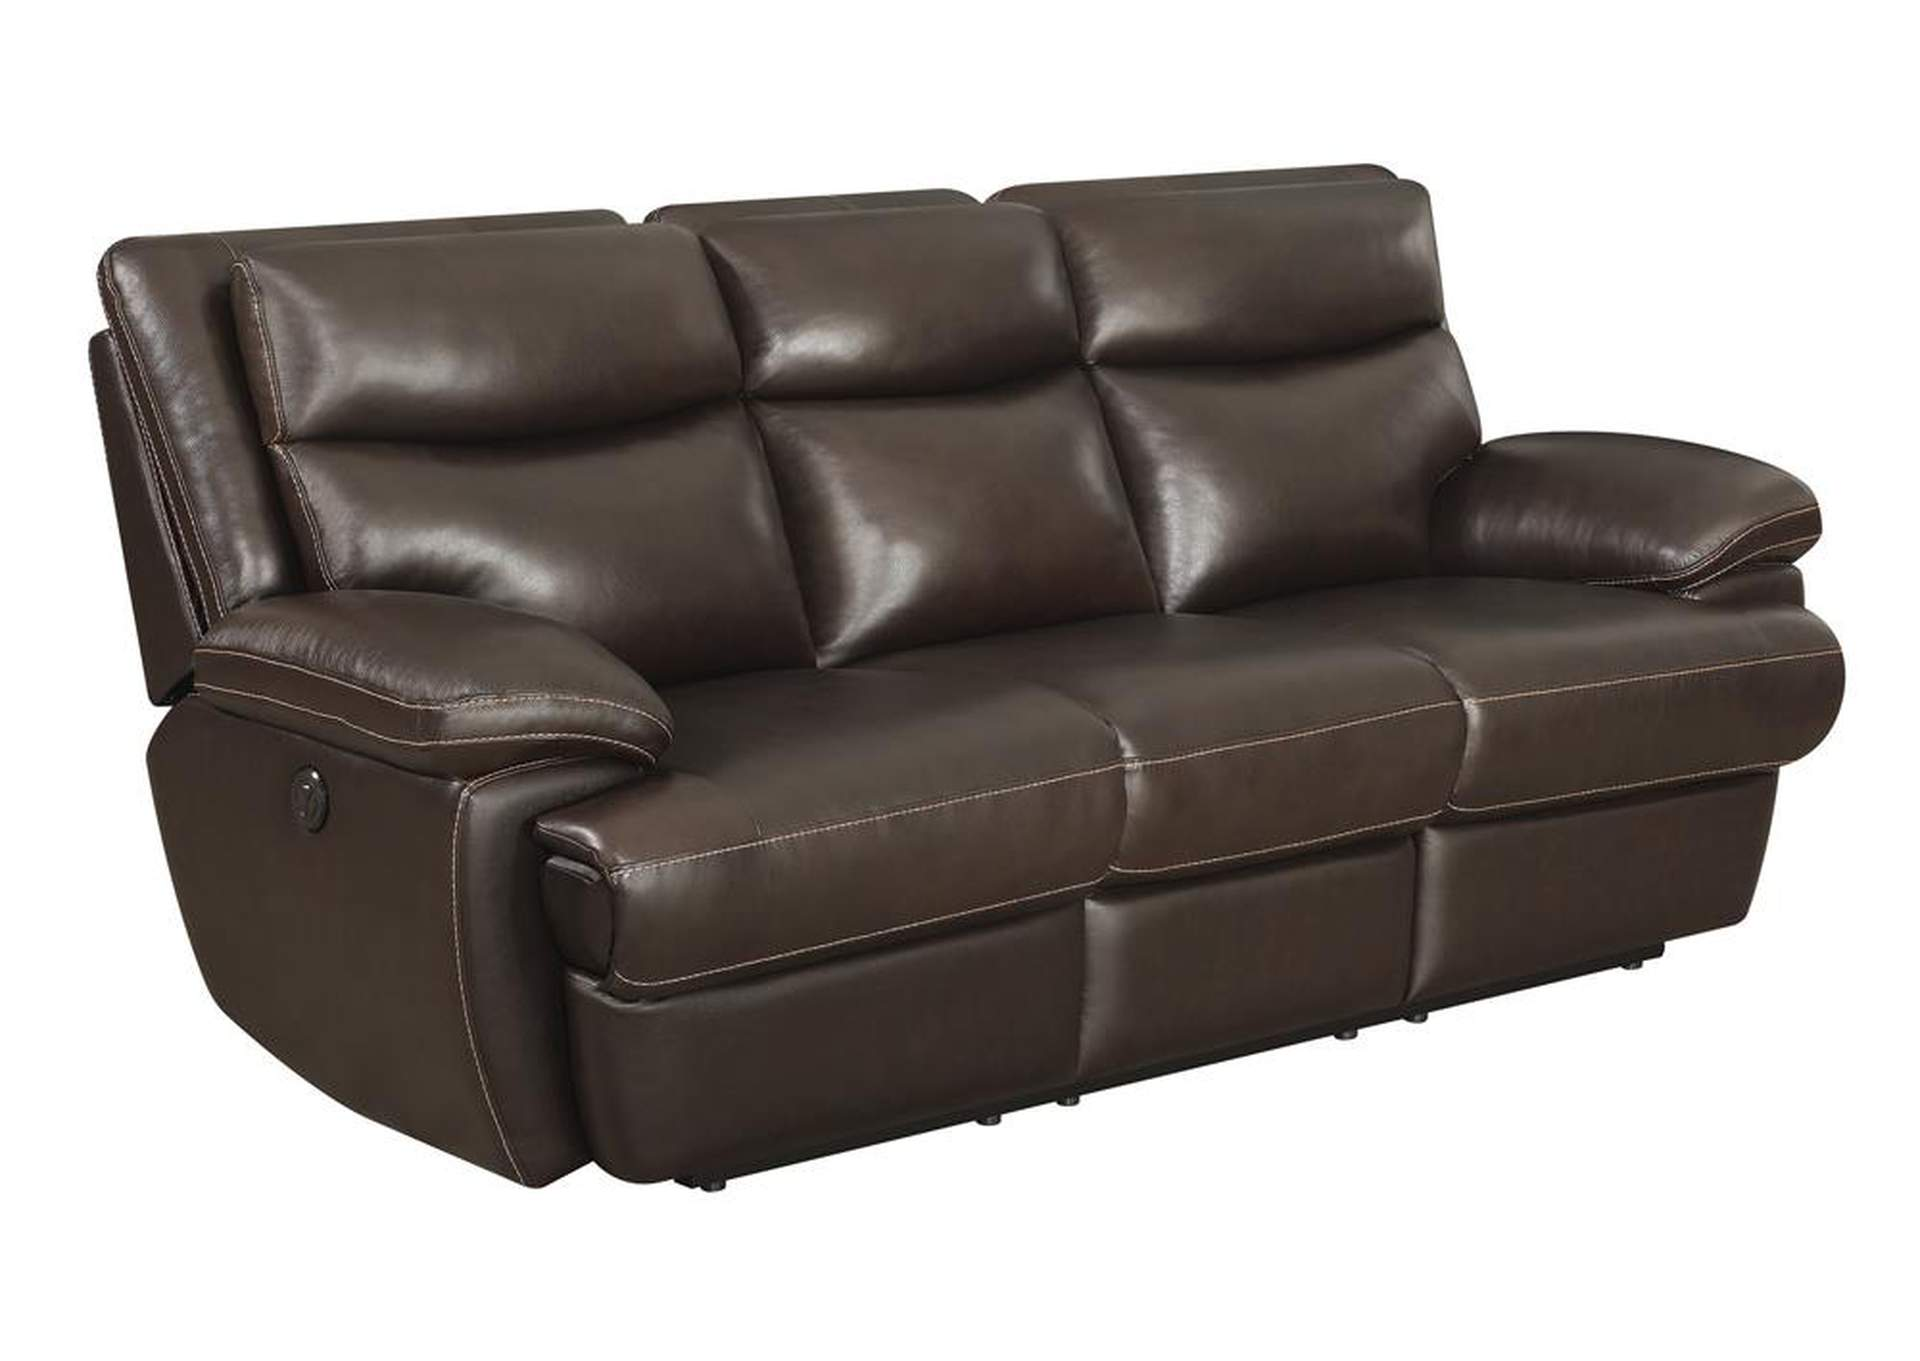 Taupe MacPherson Casual Motion Power Sofa,Coaster Furniture